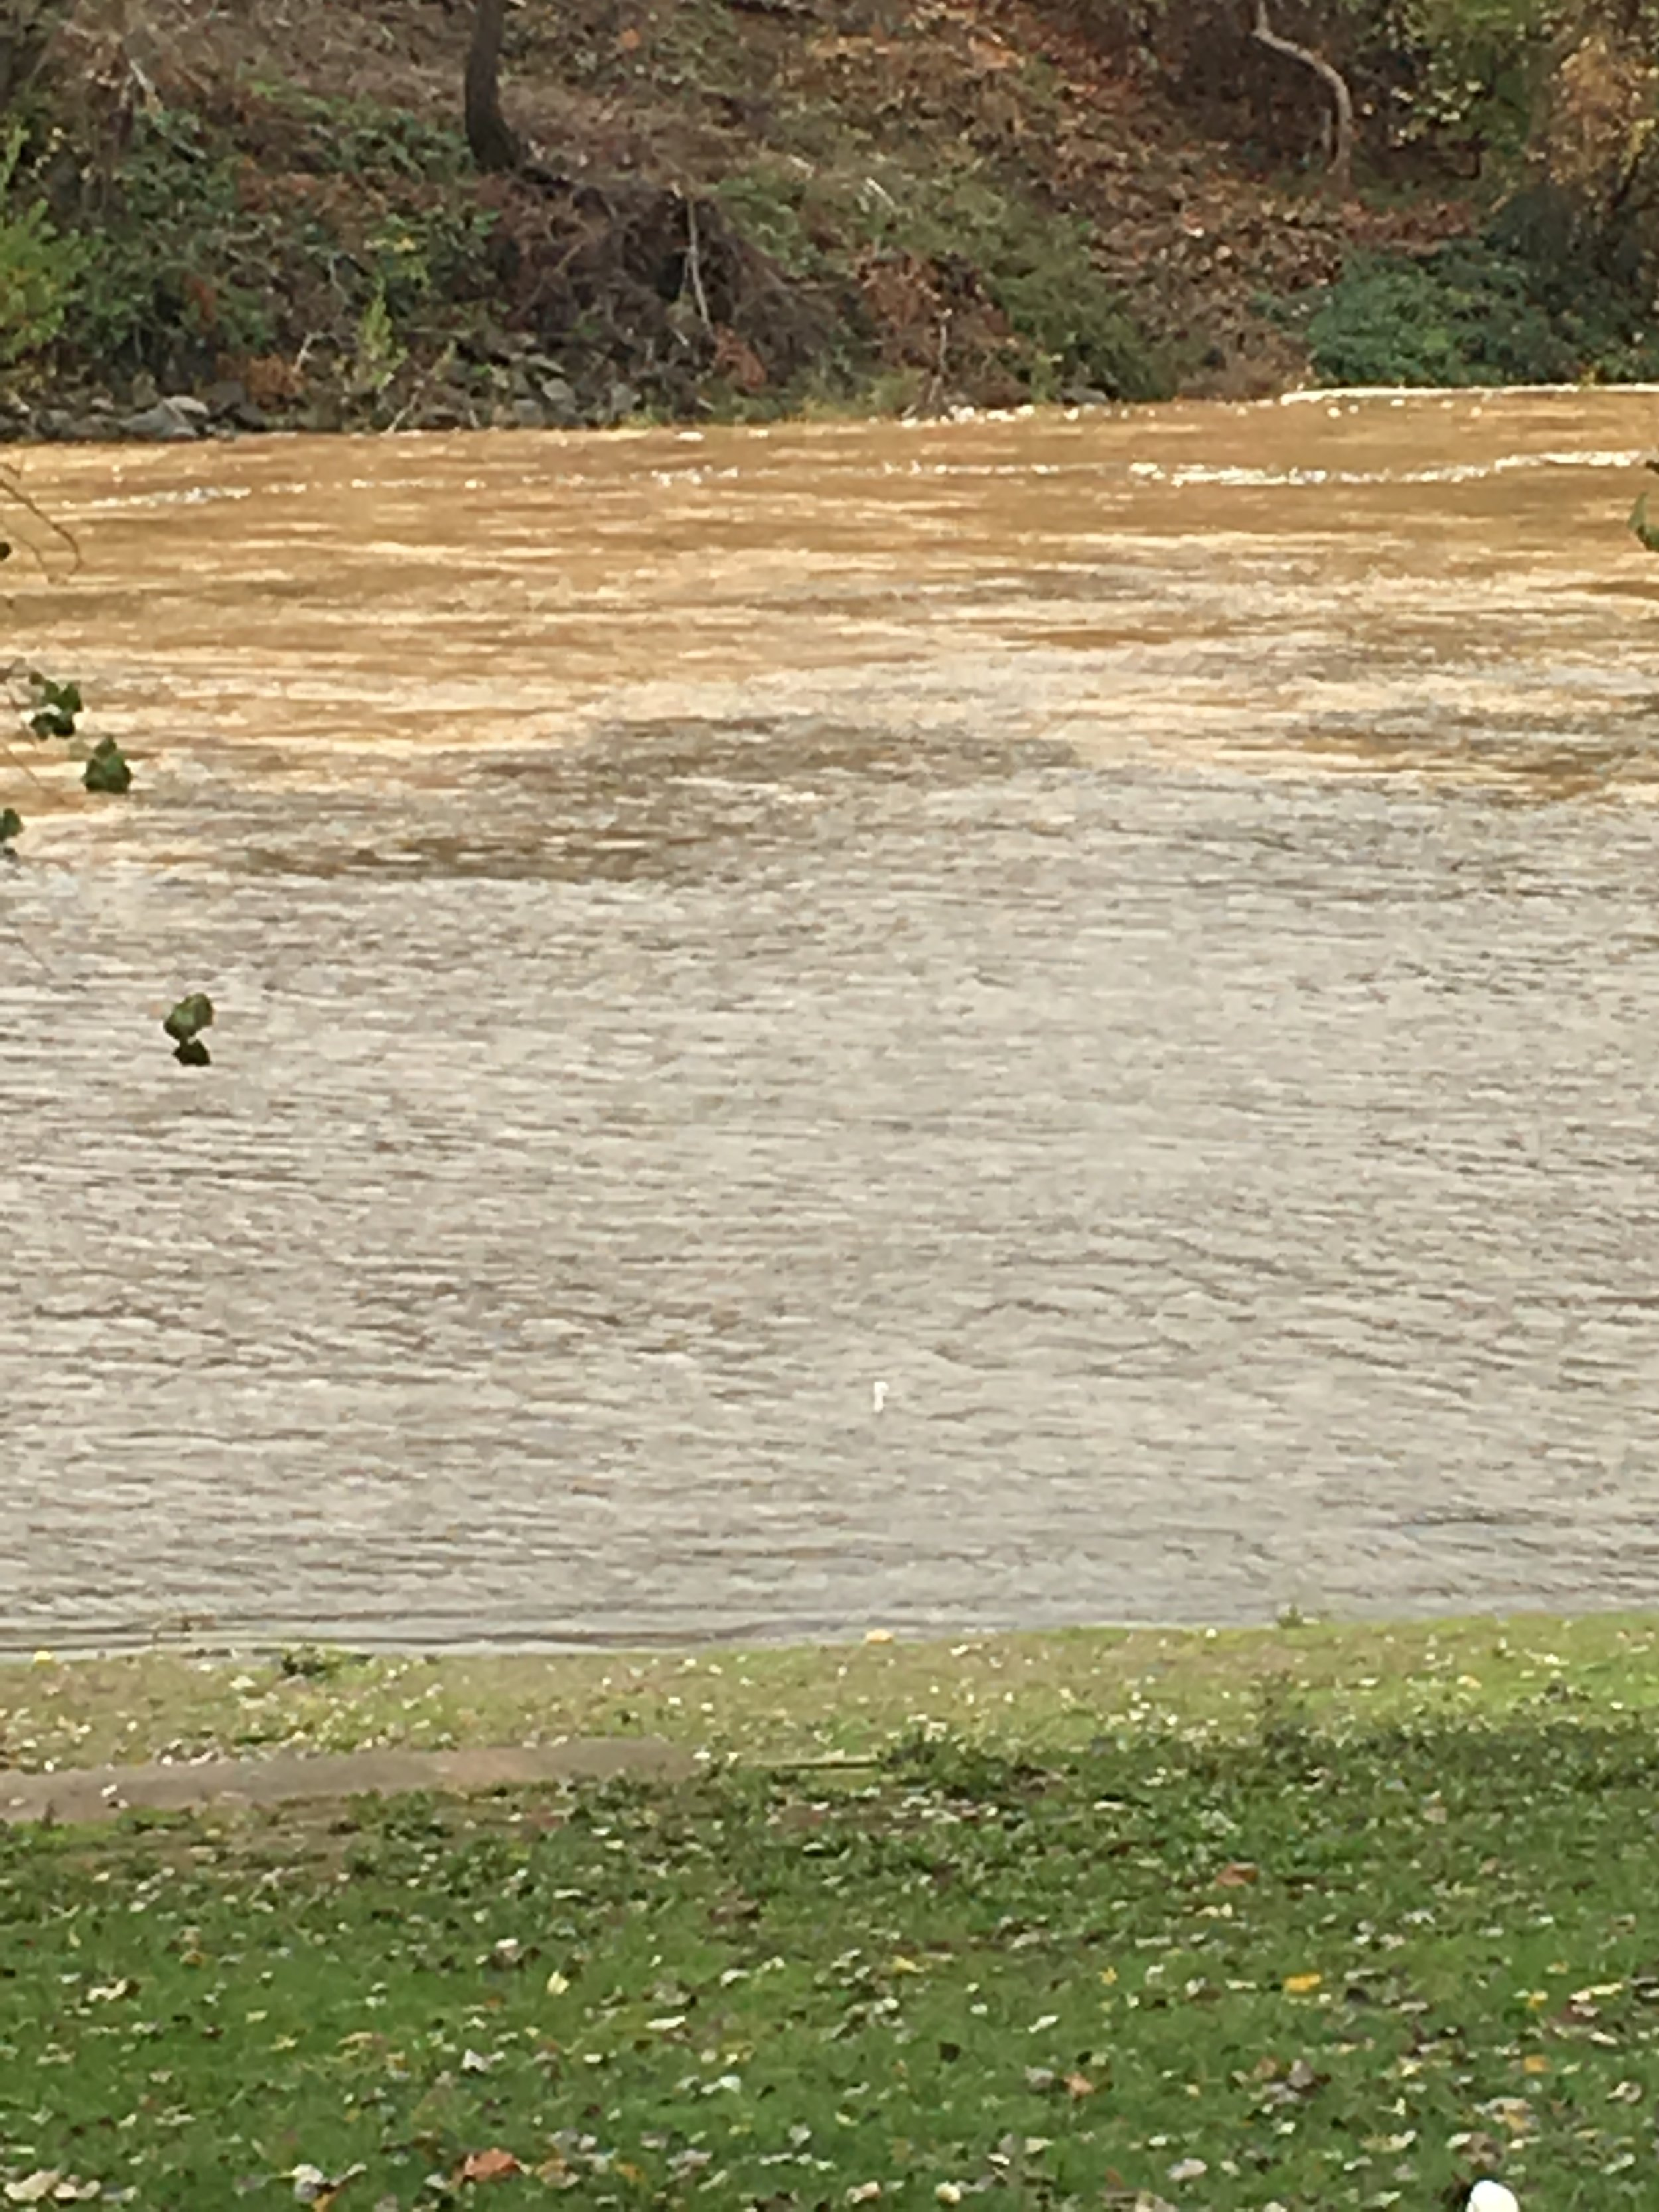 """Photo taken by Northern California salmon fishing guide Mike Rasmussen of  SalmonSacRiver.com . Photo was taken around 1:00pm in Red Bluff, Ca as the Sacramento River is rising and """"blowing out"""". This wave of water will ensure more safe passage for endangered baby Chinook Salmon."""